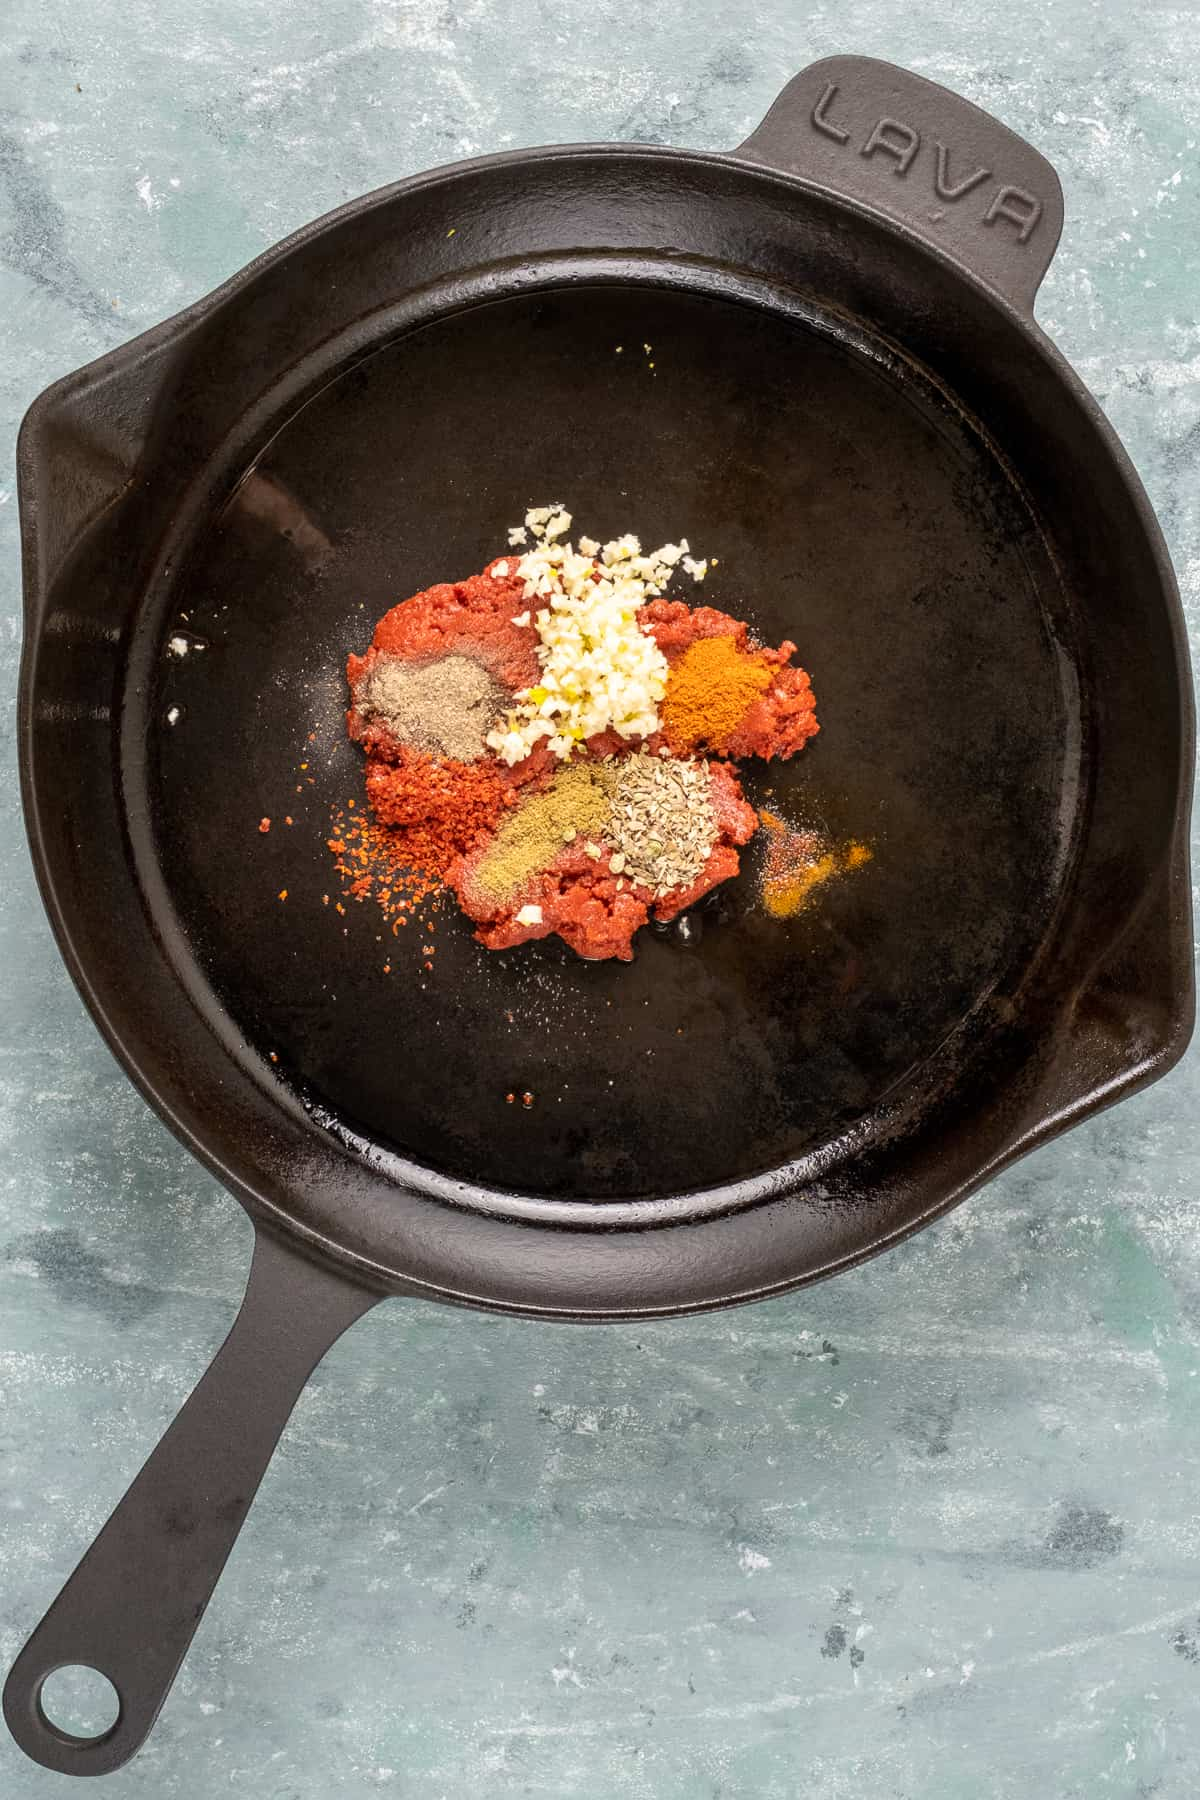 Spices, tomato paste and minced garlic in a cast iron skillet.